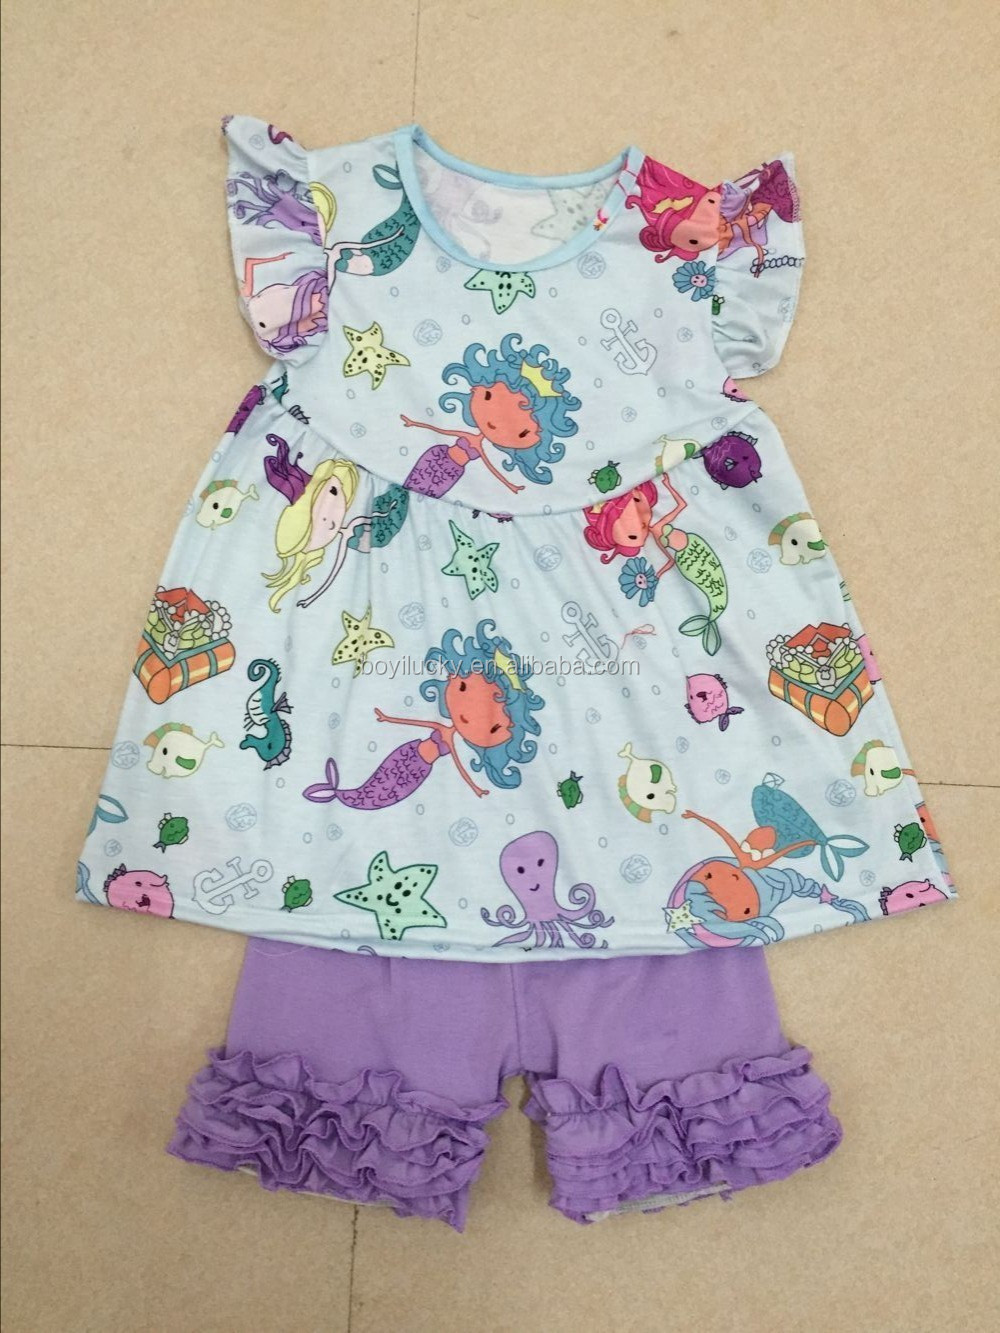 Visit our store: Our upscale, stylish children's and baby boutique is located in downtown Sumner, Washington. If you're outside our area, browse our online baby boutique 24/7. If you're outside our area, browse our online baby boutique 24/7.